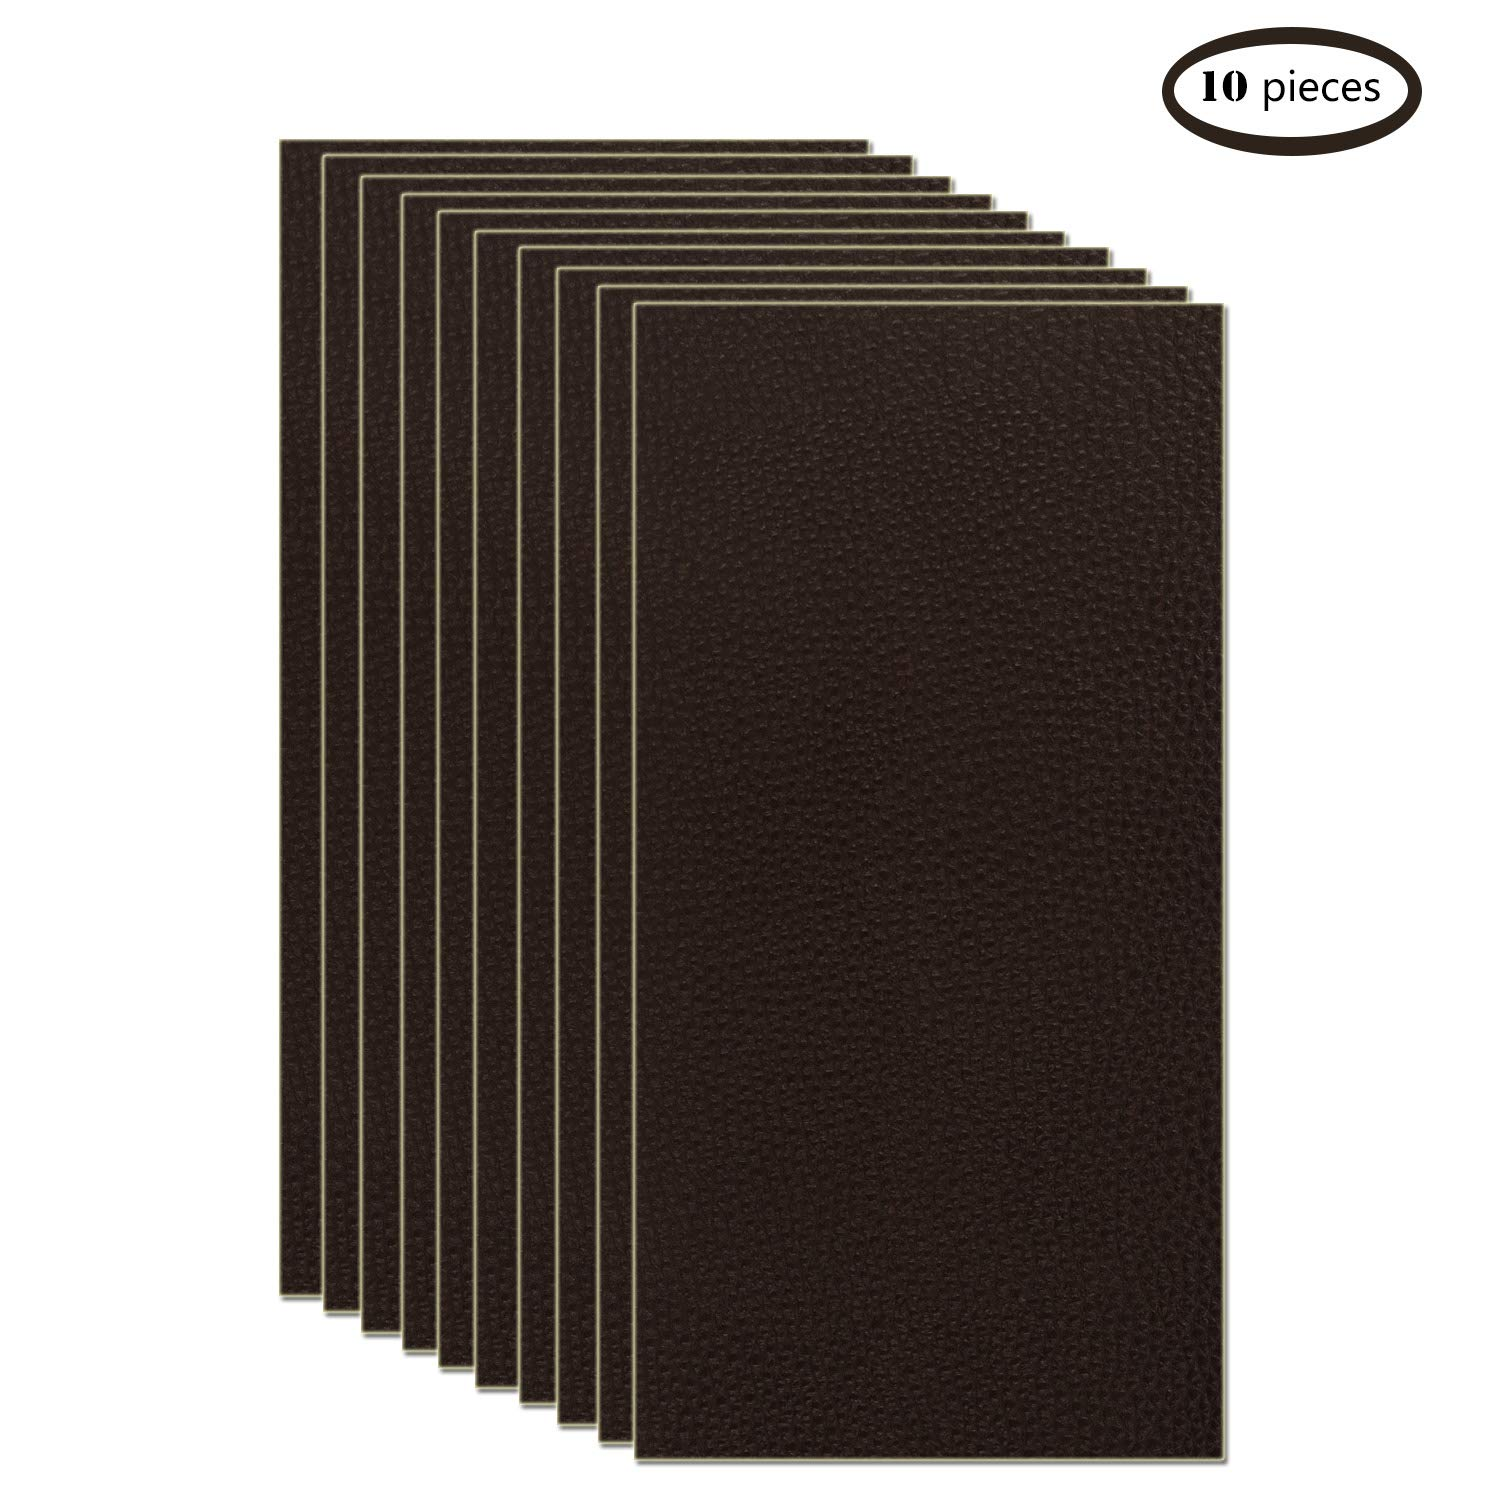 10 Pieces Leather Patches Leather Repair Kit for Couch Furniture Sofas Car Seats Handbags Jackets (Dark Brown) by Bonaier